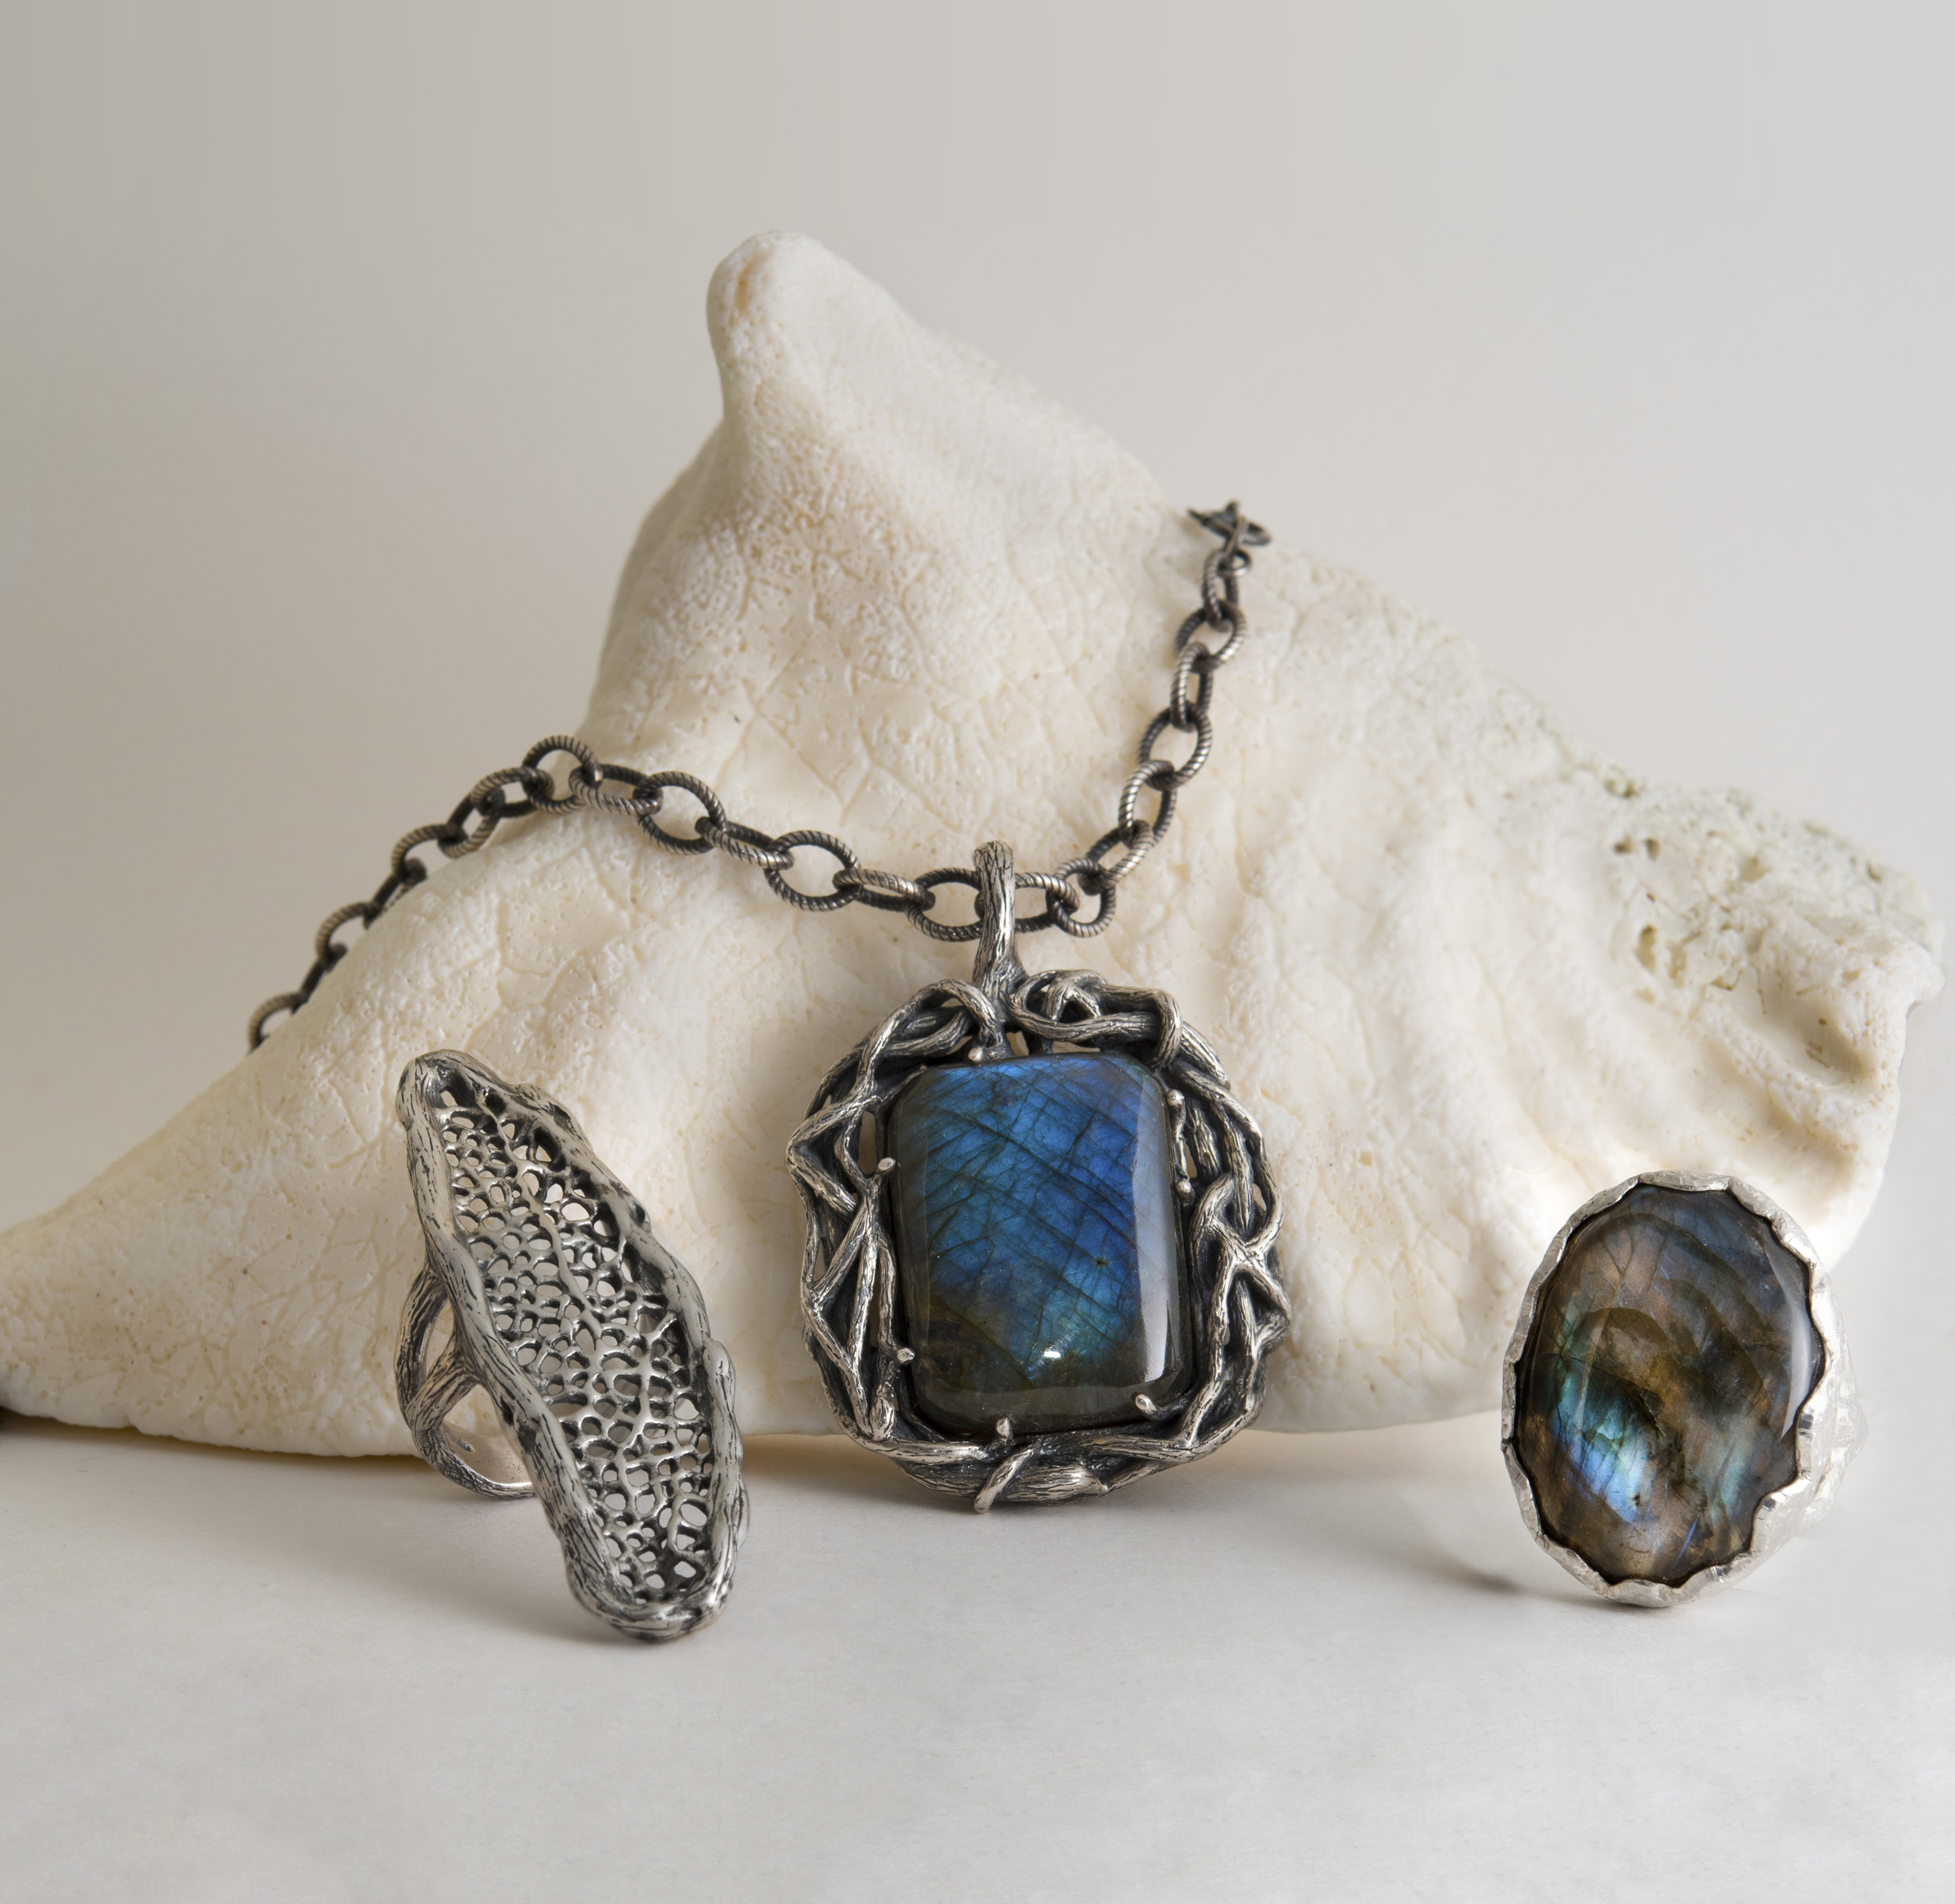 Sterling Silver Coral Ring, Labradorite Branch Pendant Necklace, and Labradorite Ring